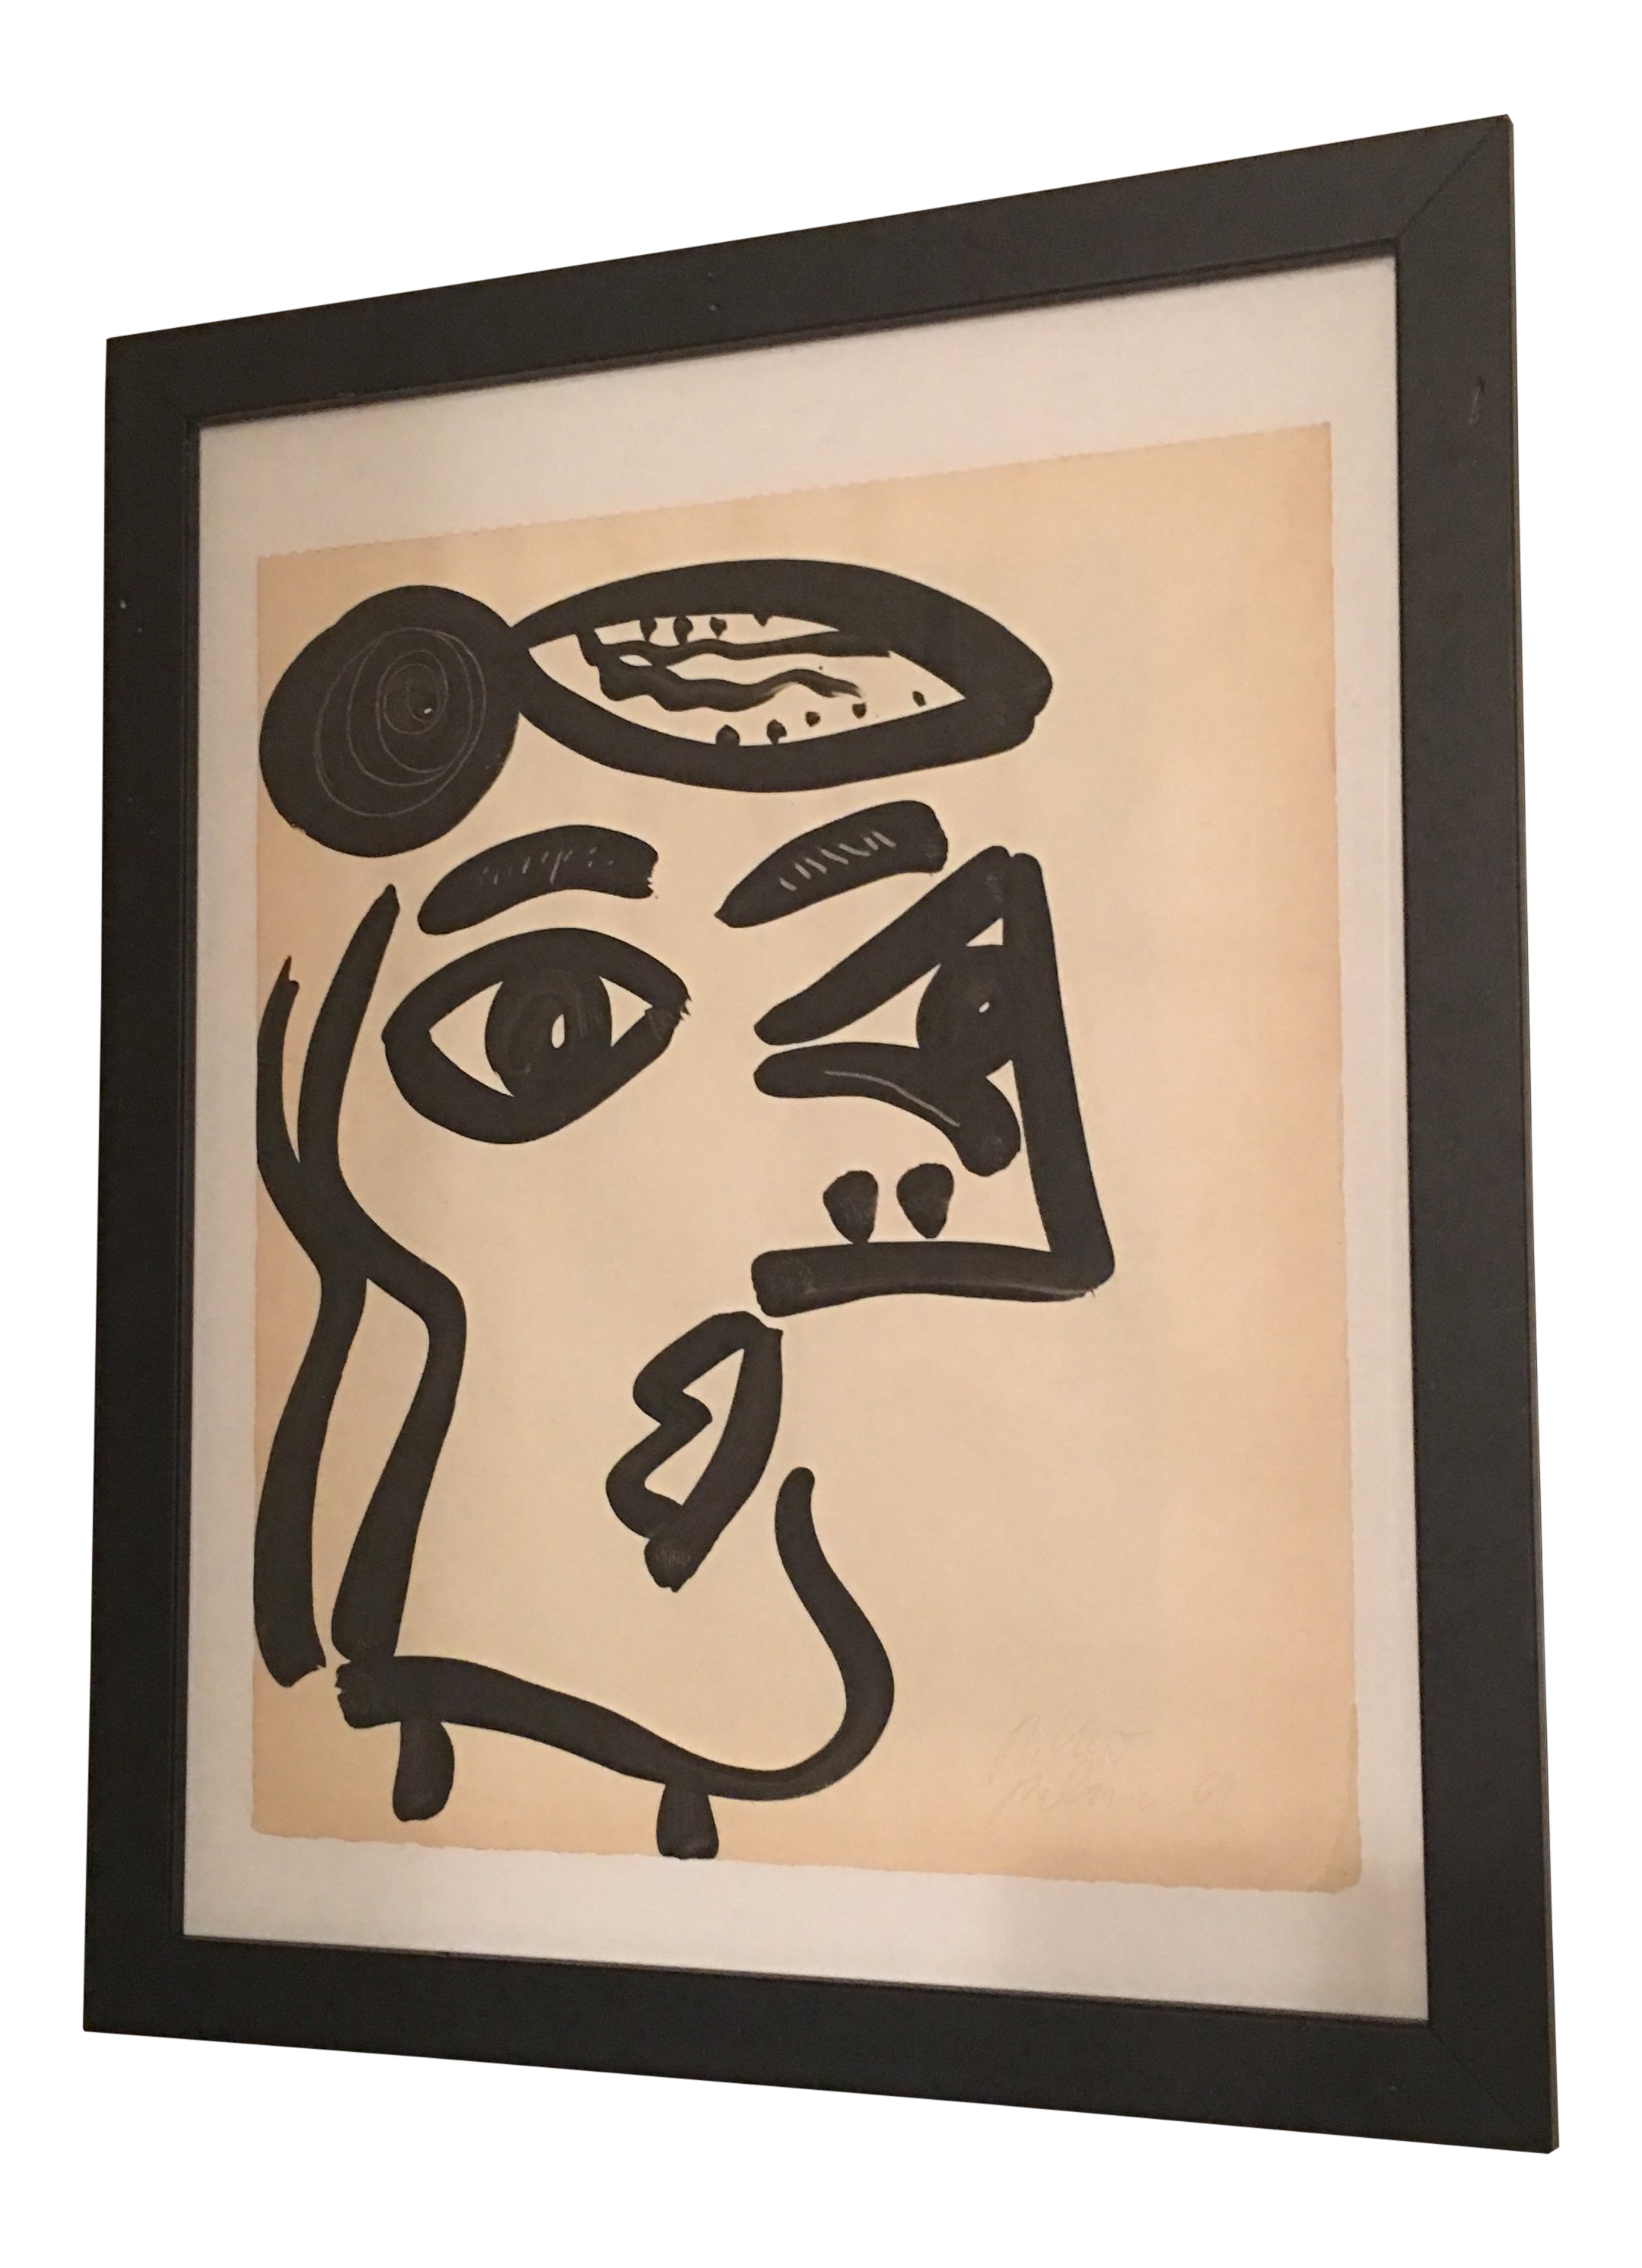 Dallas drawing abstract. Peter keil cubist face